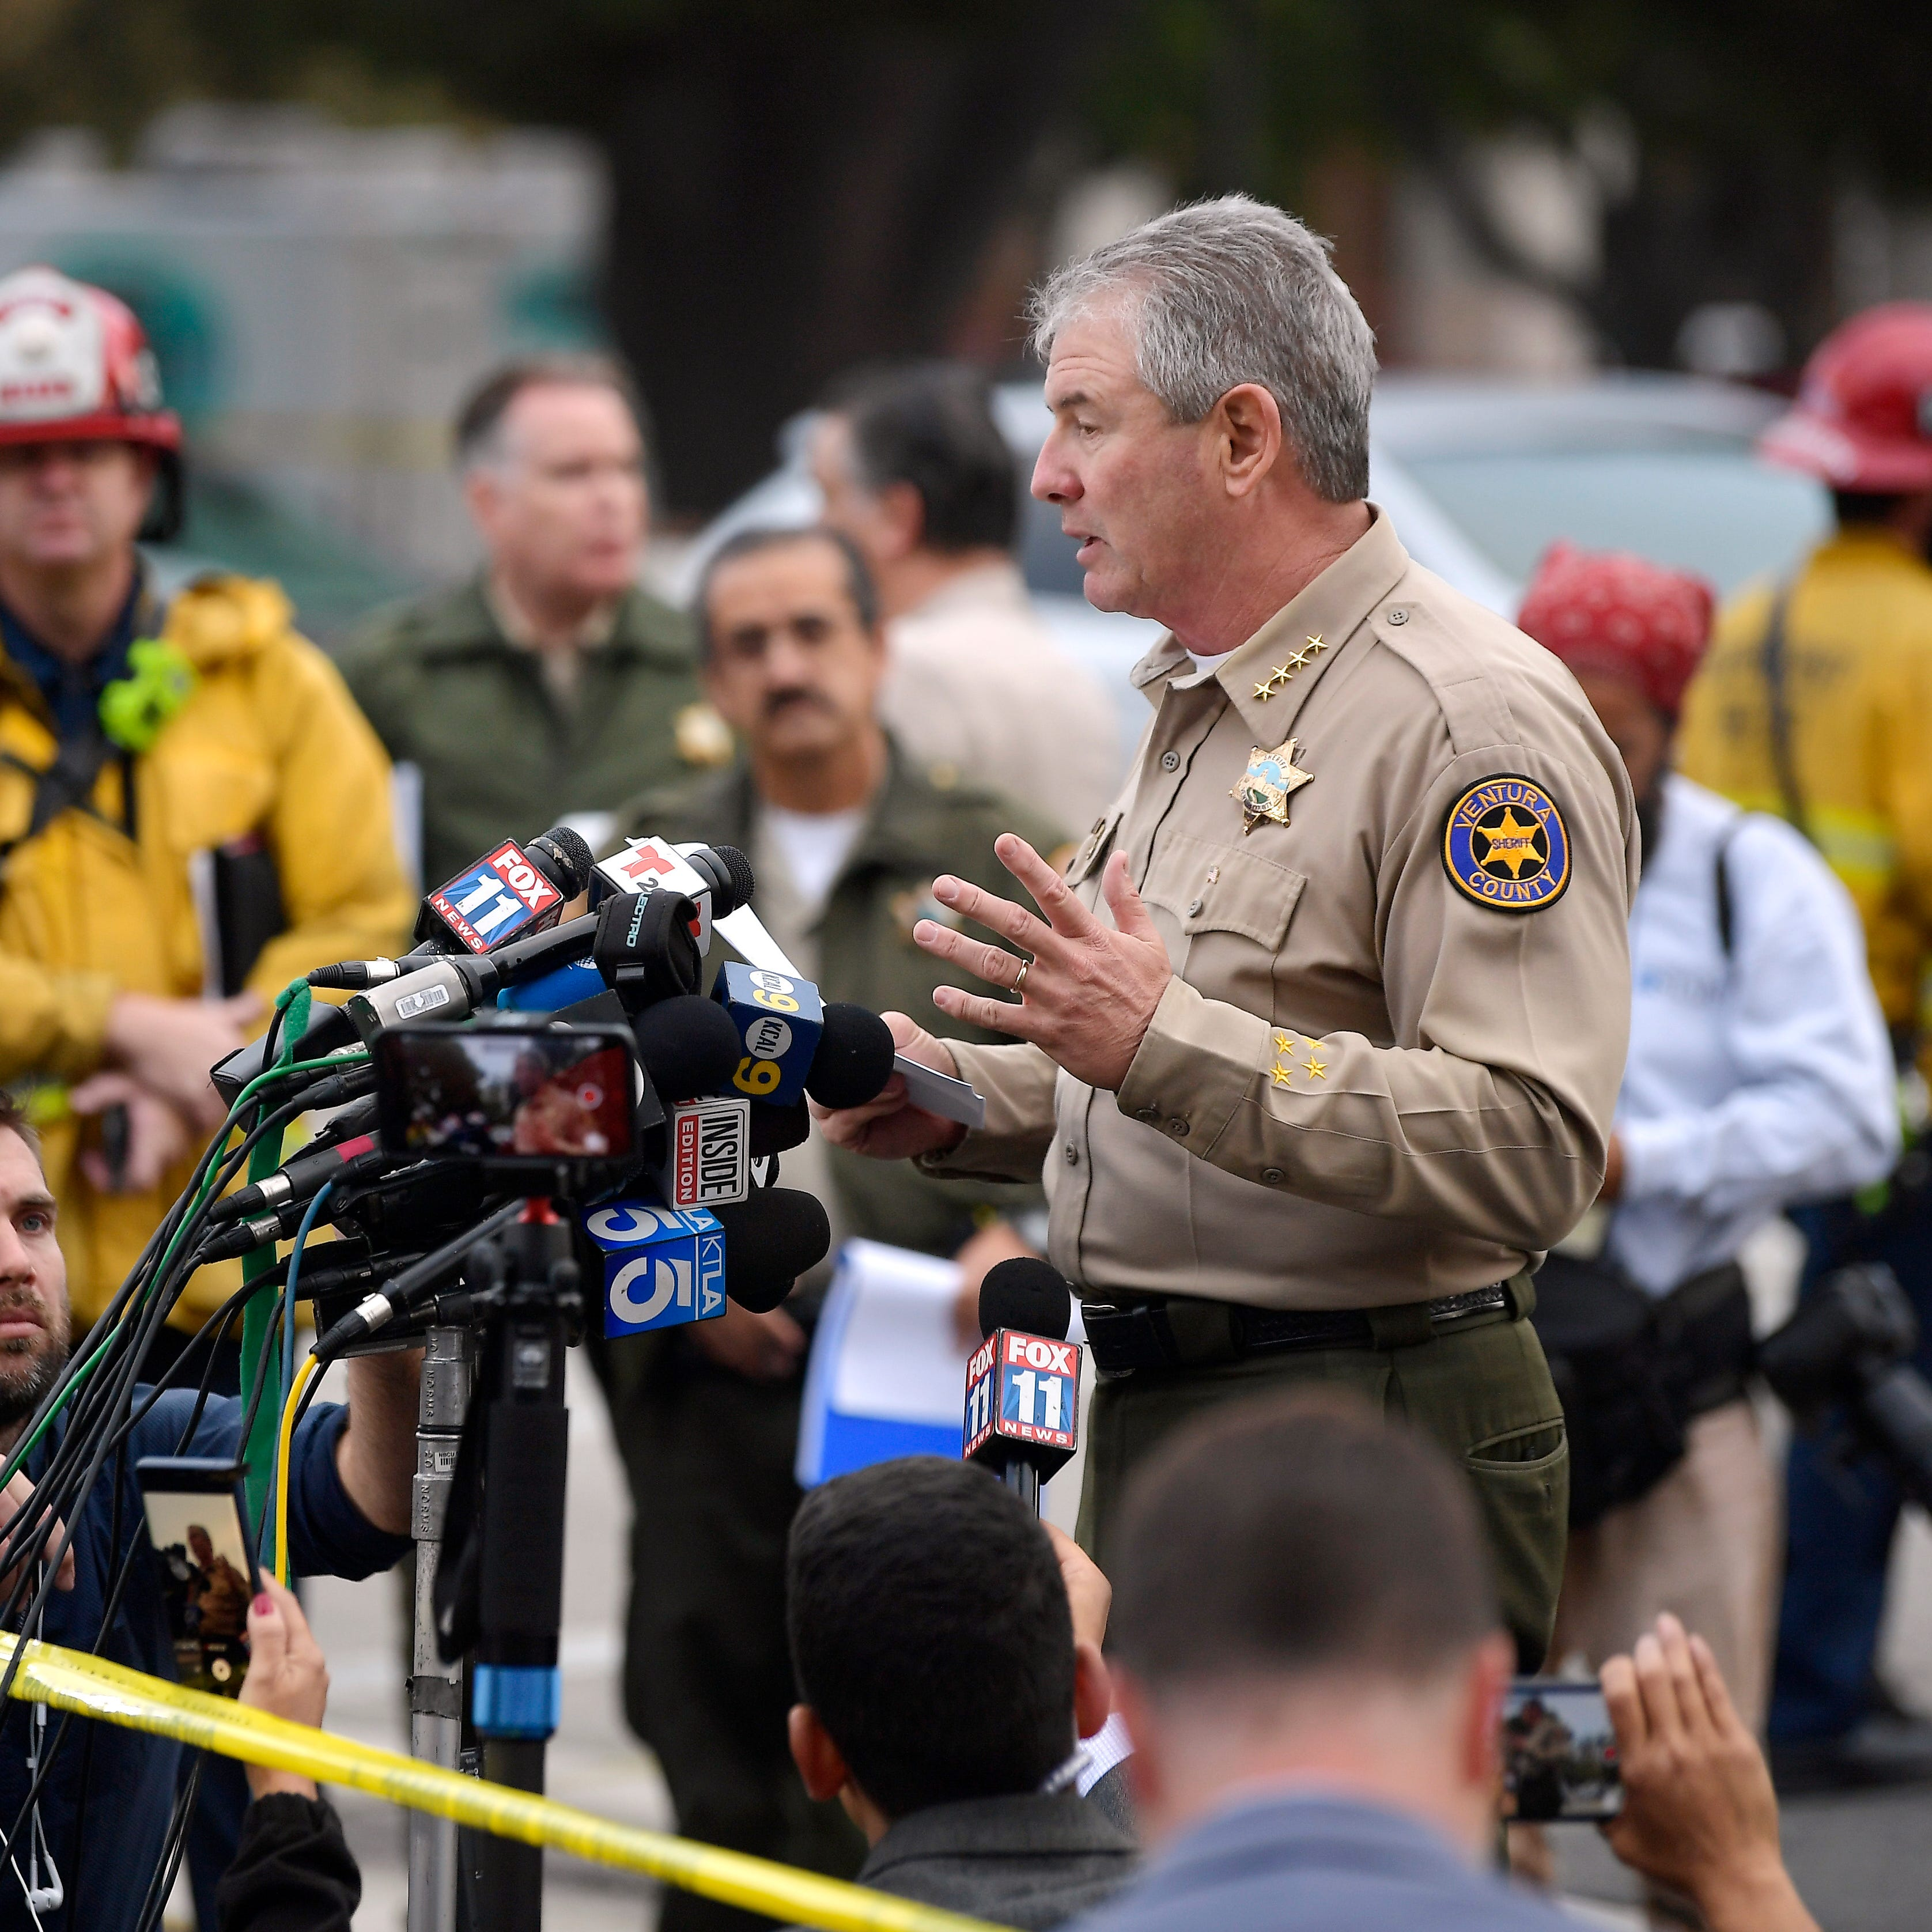 Ventura County Sheriff Geoff Dean speaks to reporters near the scene in Thousand Oaks, Calif., on Nov. 8, 2018, where a gunman opened fire the previous night inside a country dance bar crowded with hundreds of people.